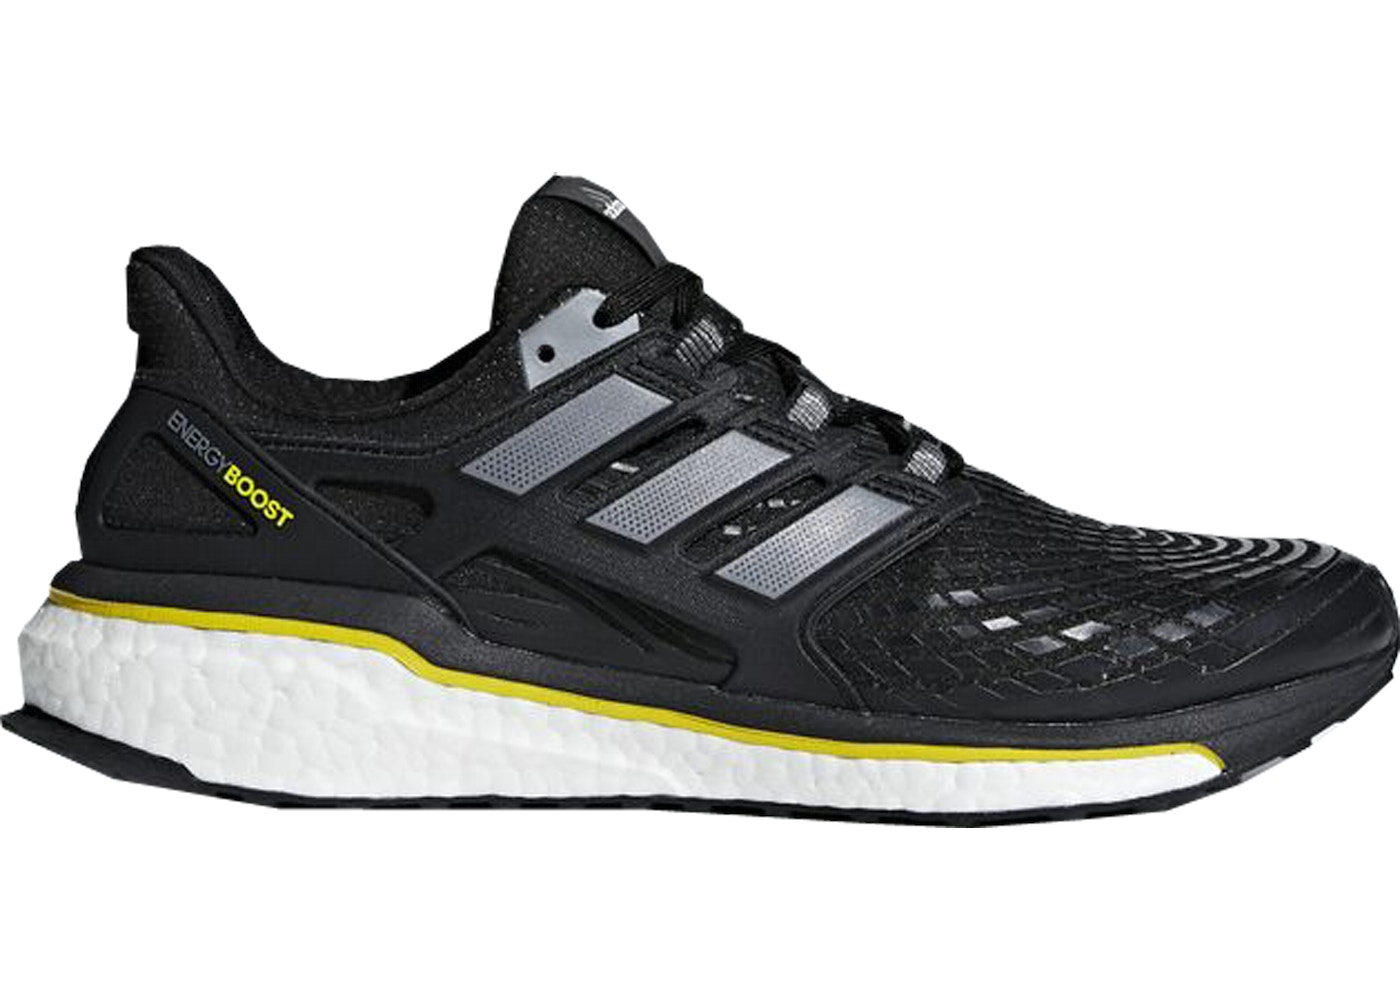 419c290ea adidas Energy Boost 5th Anniversary Black Yellow - CQ1762